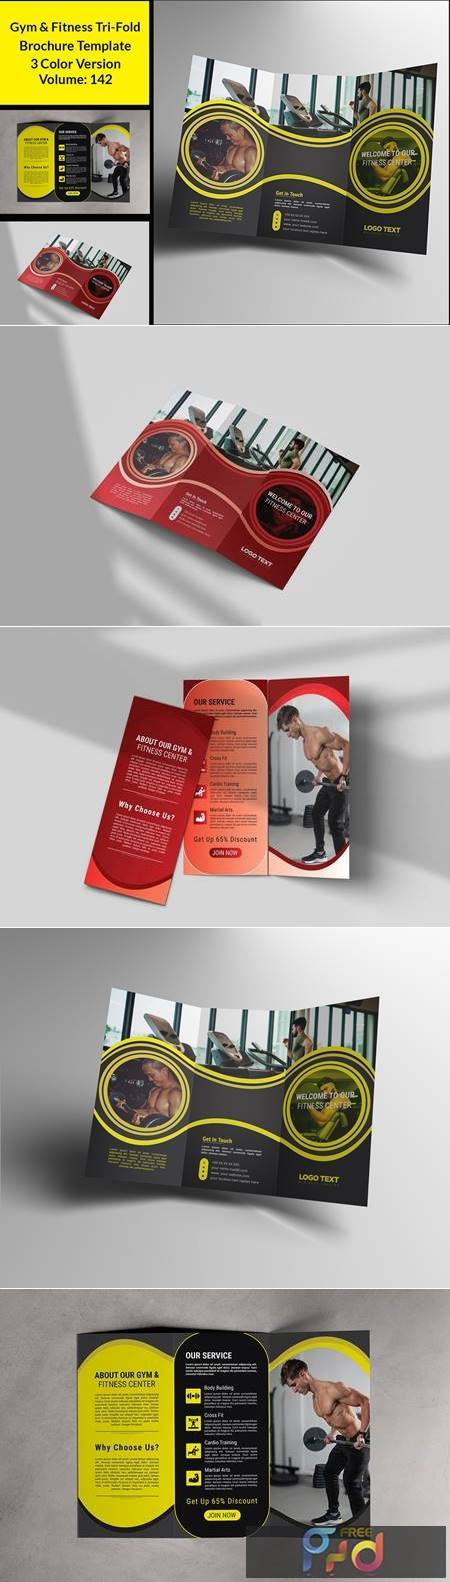 Gym Trifold Brochure Template 4664204 1